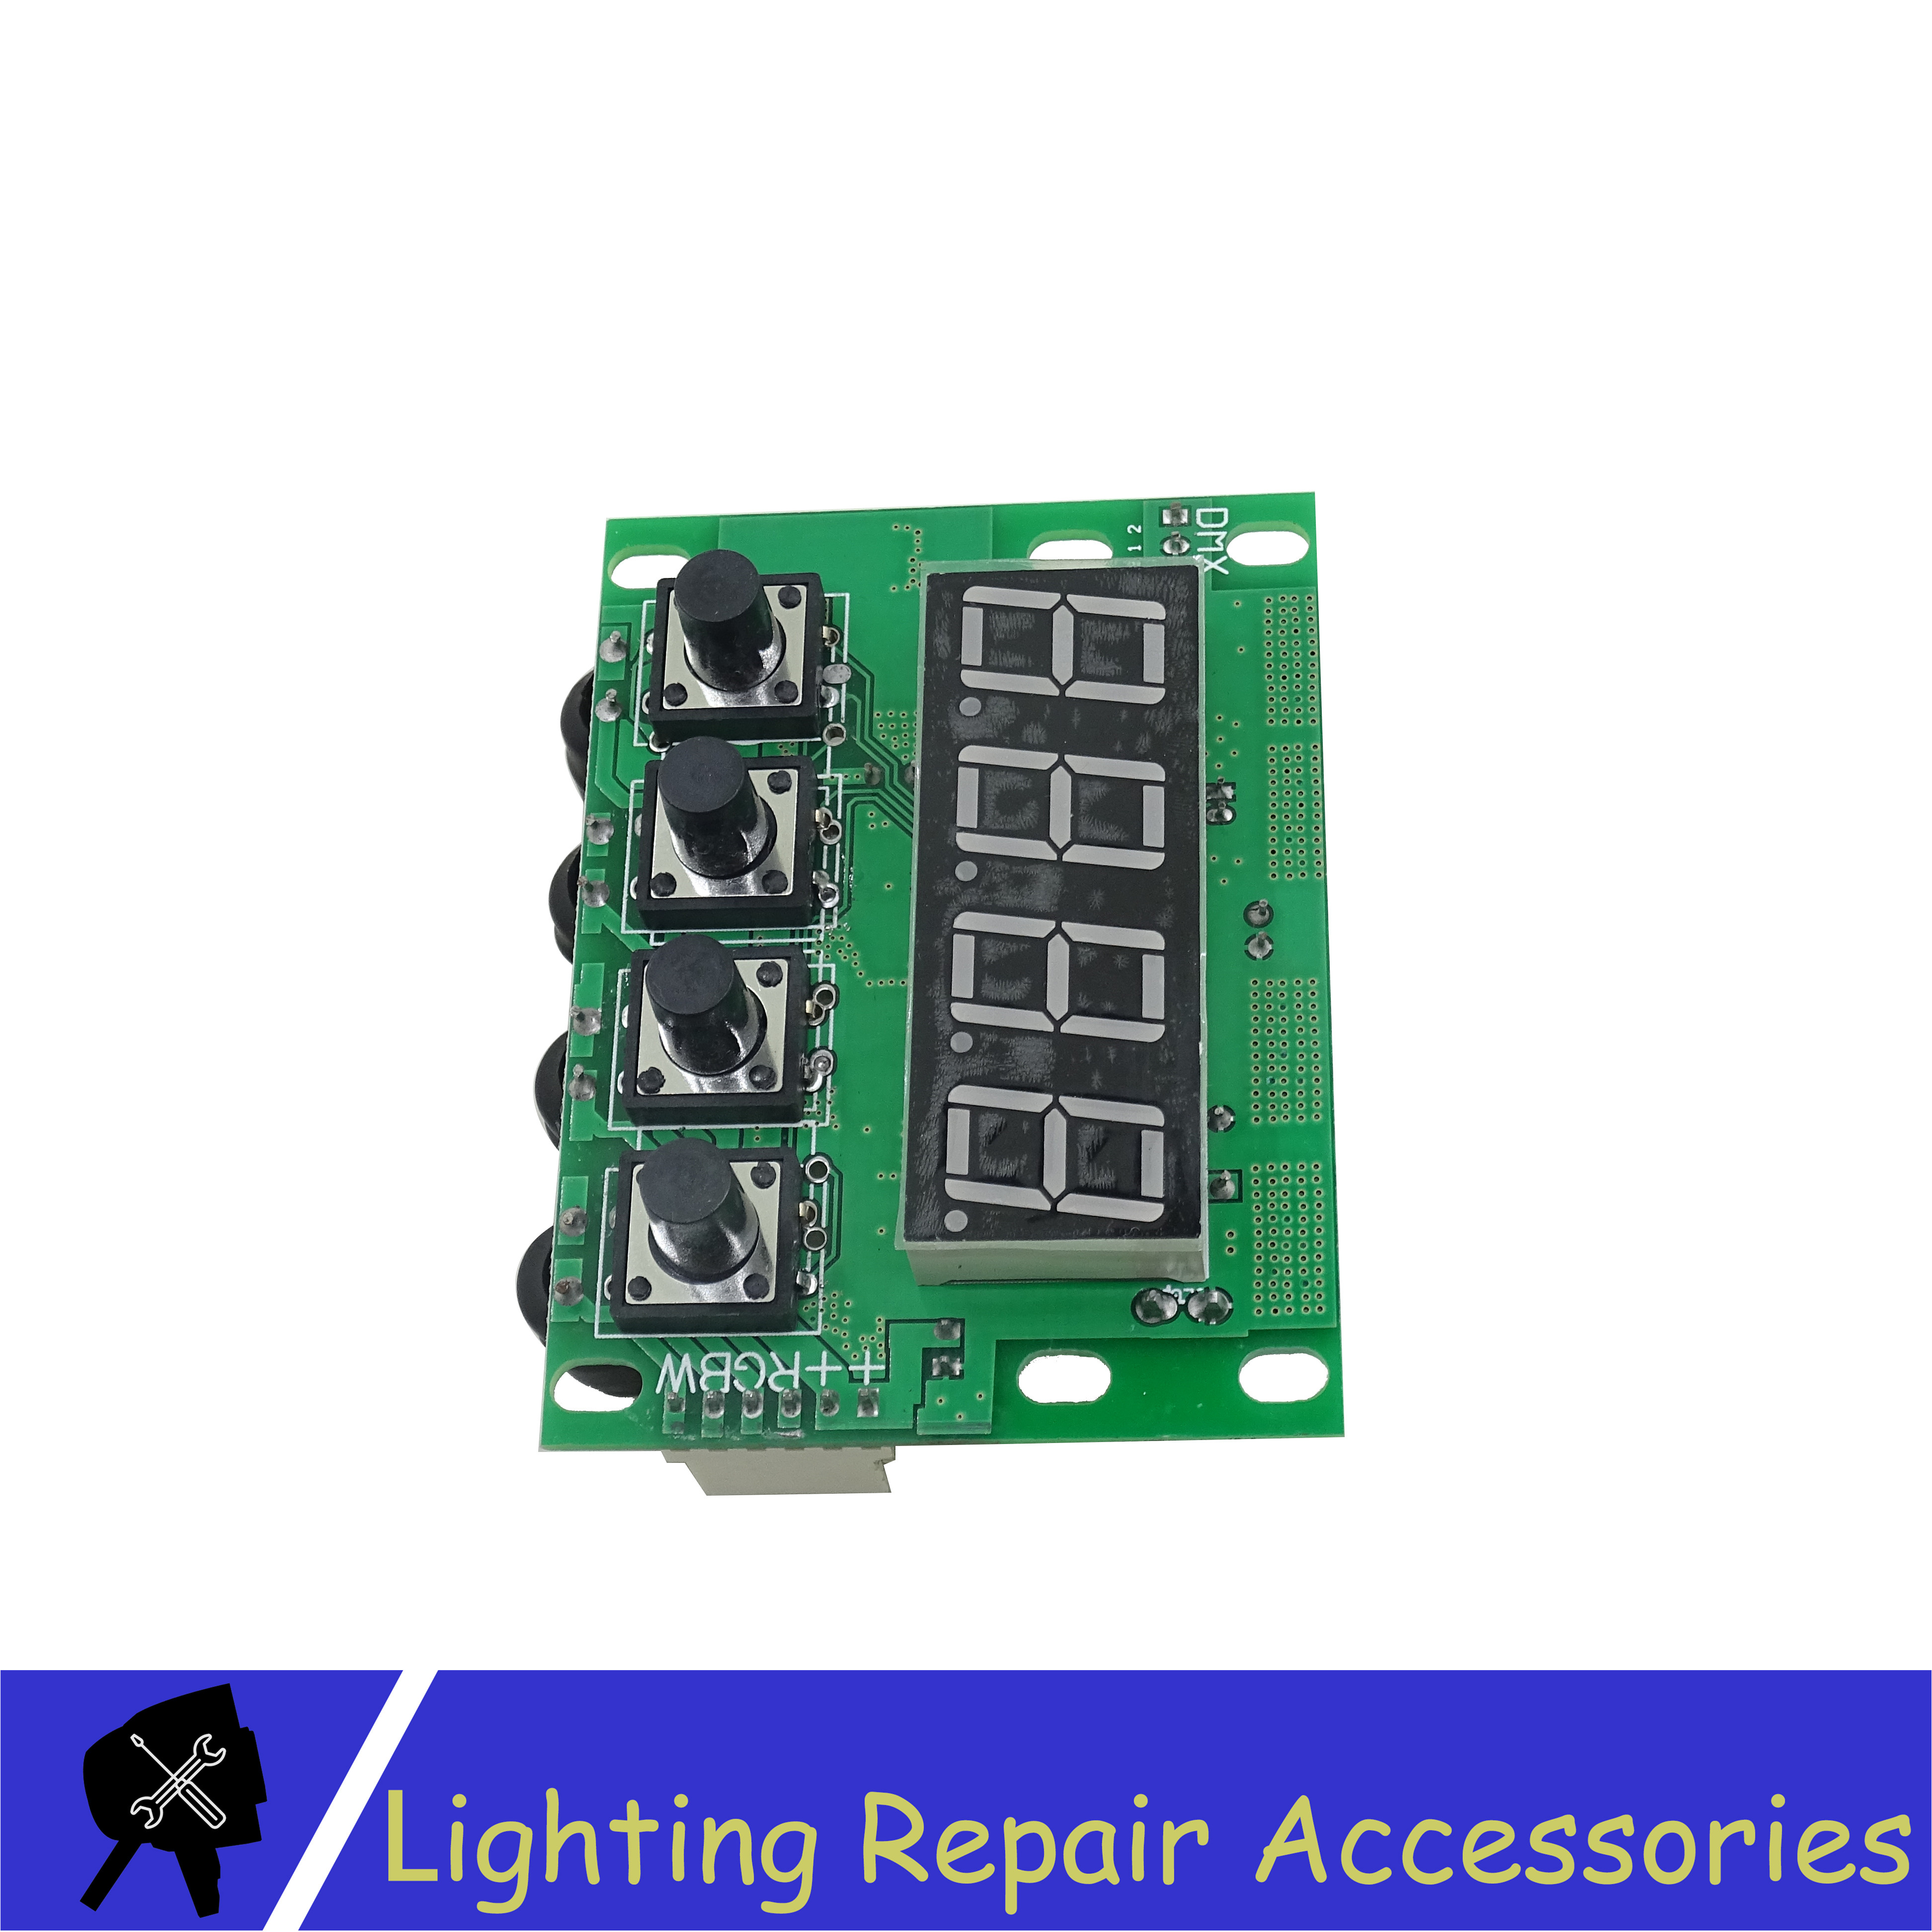 Led Par Light Motherboard Use For 18x15w 24x15w 12x15w RGBWA 5in1 Led Stage Light Waterproof IP65 Or IP33 Repair Spare Parts